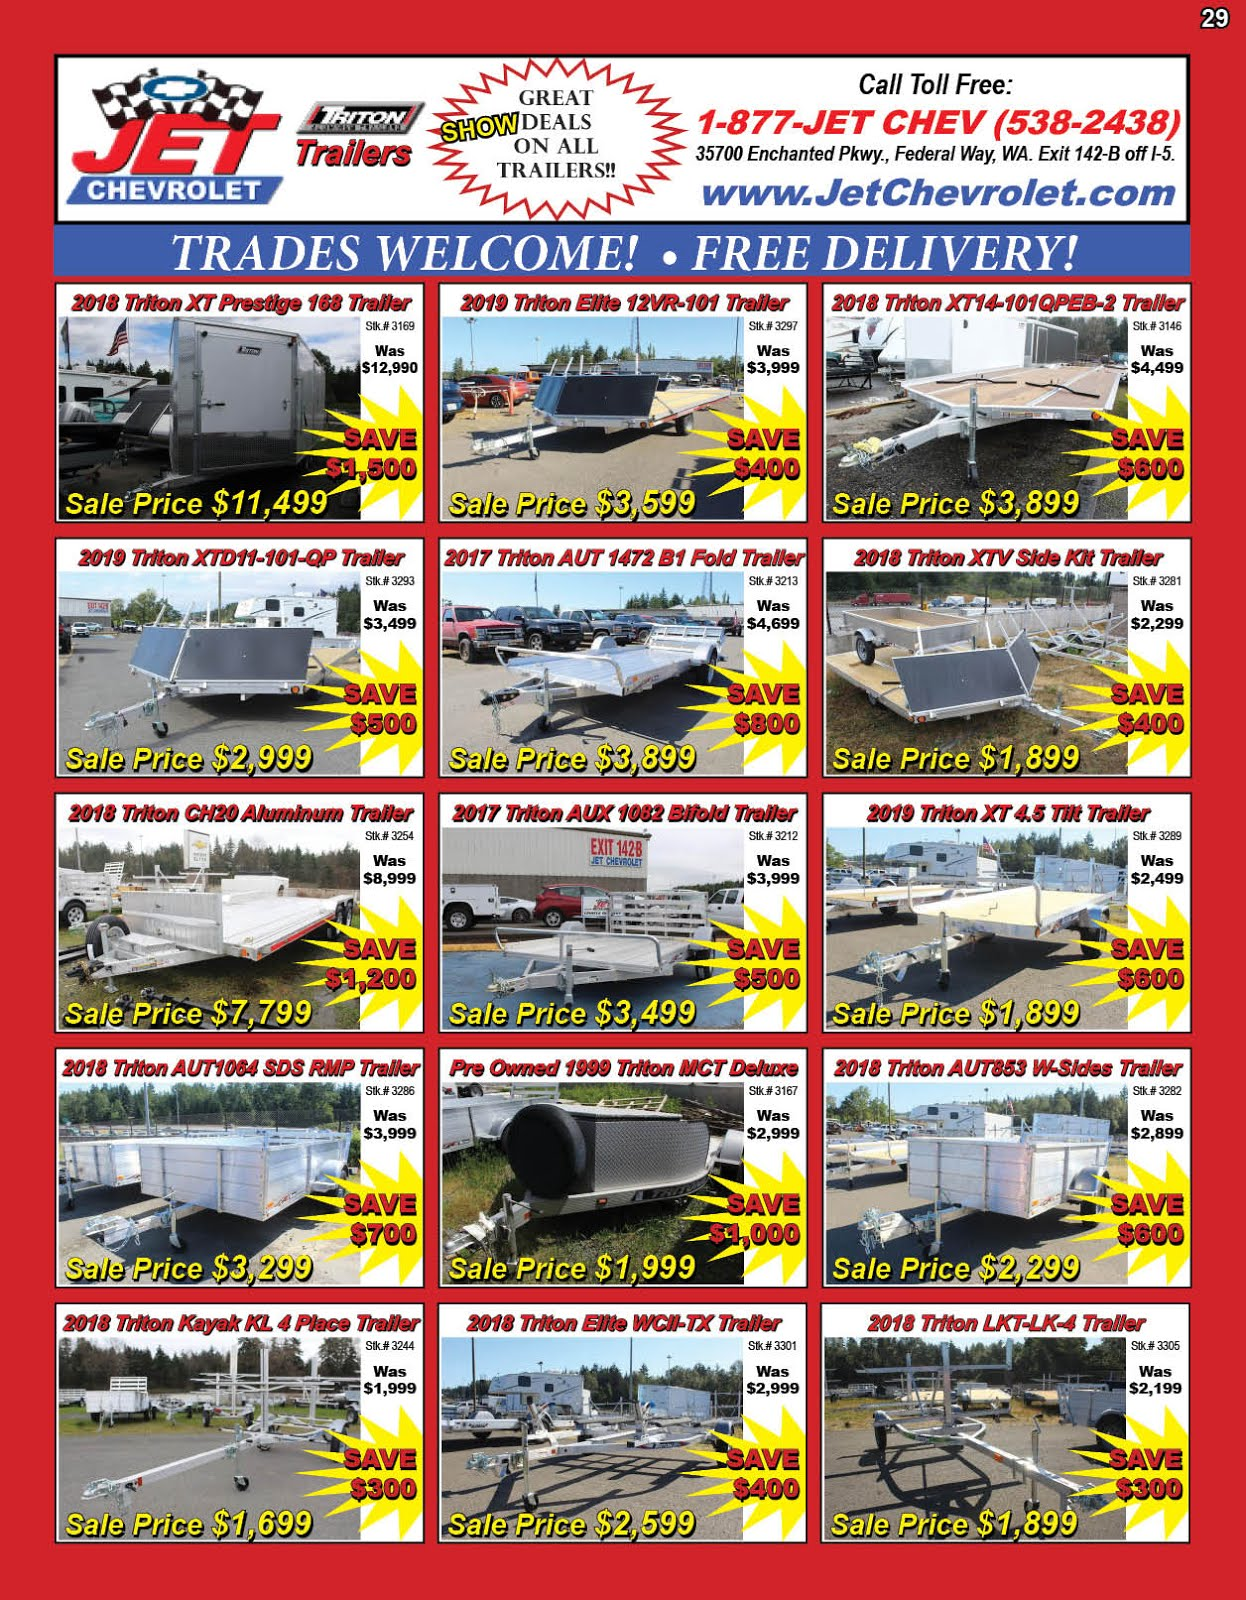 Jet Chevrolet Big Triton Trailers Sale!! Big Savings!!